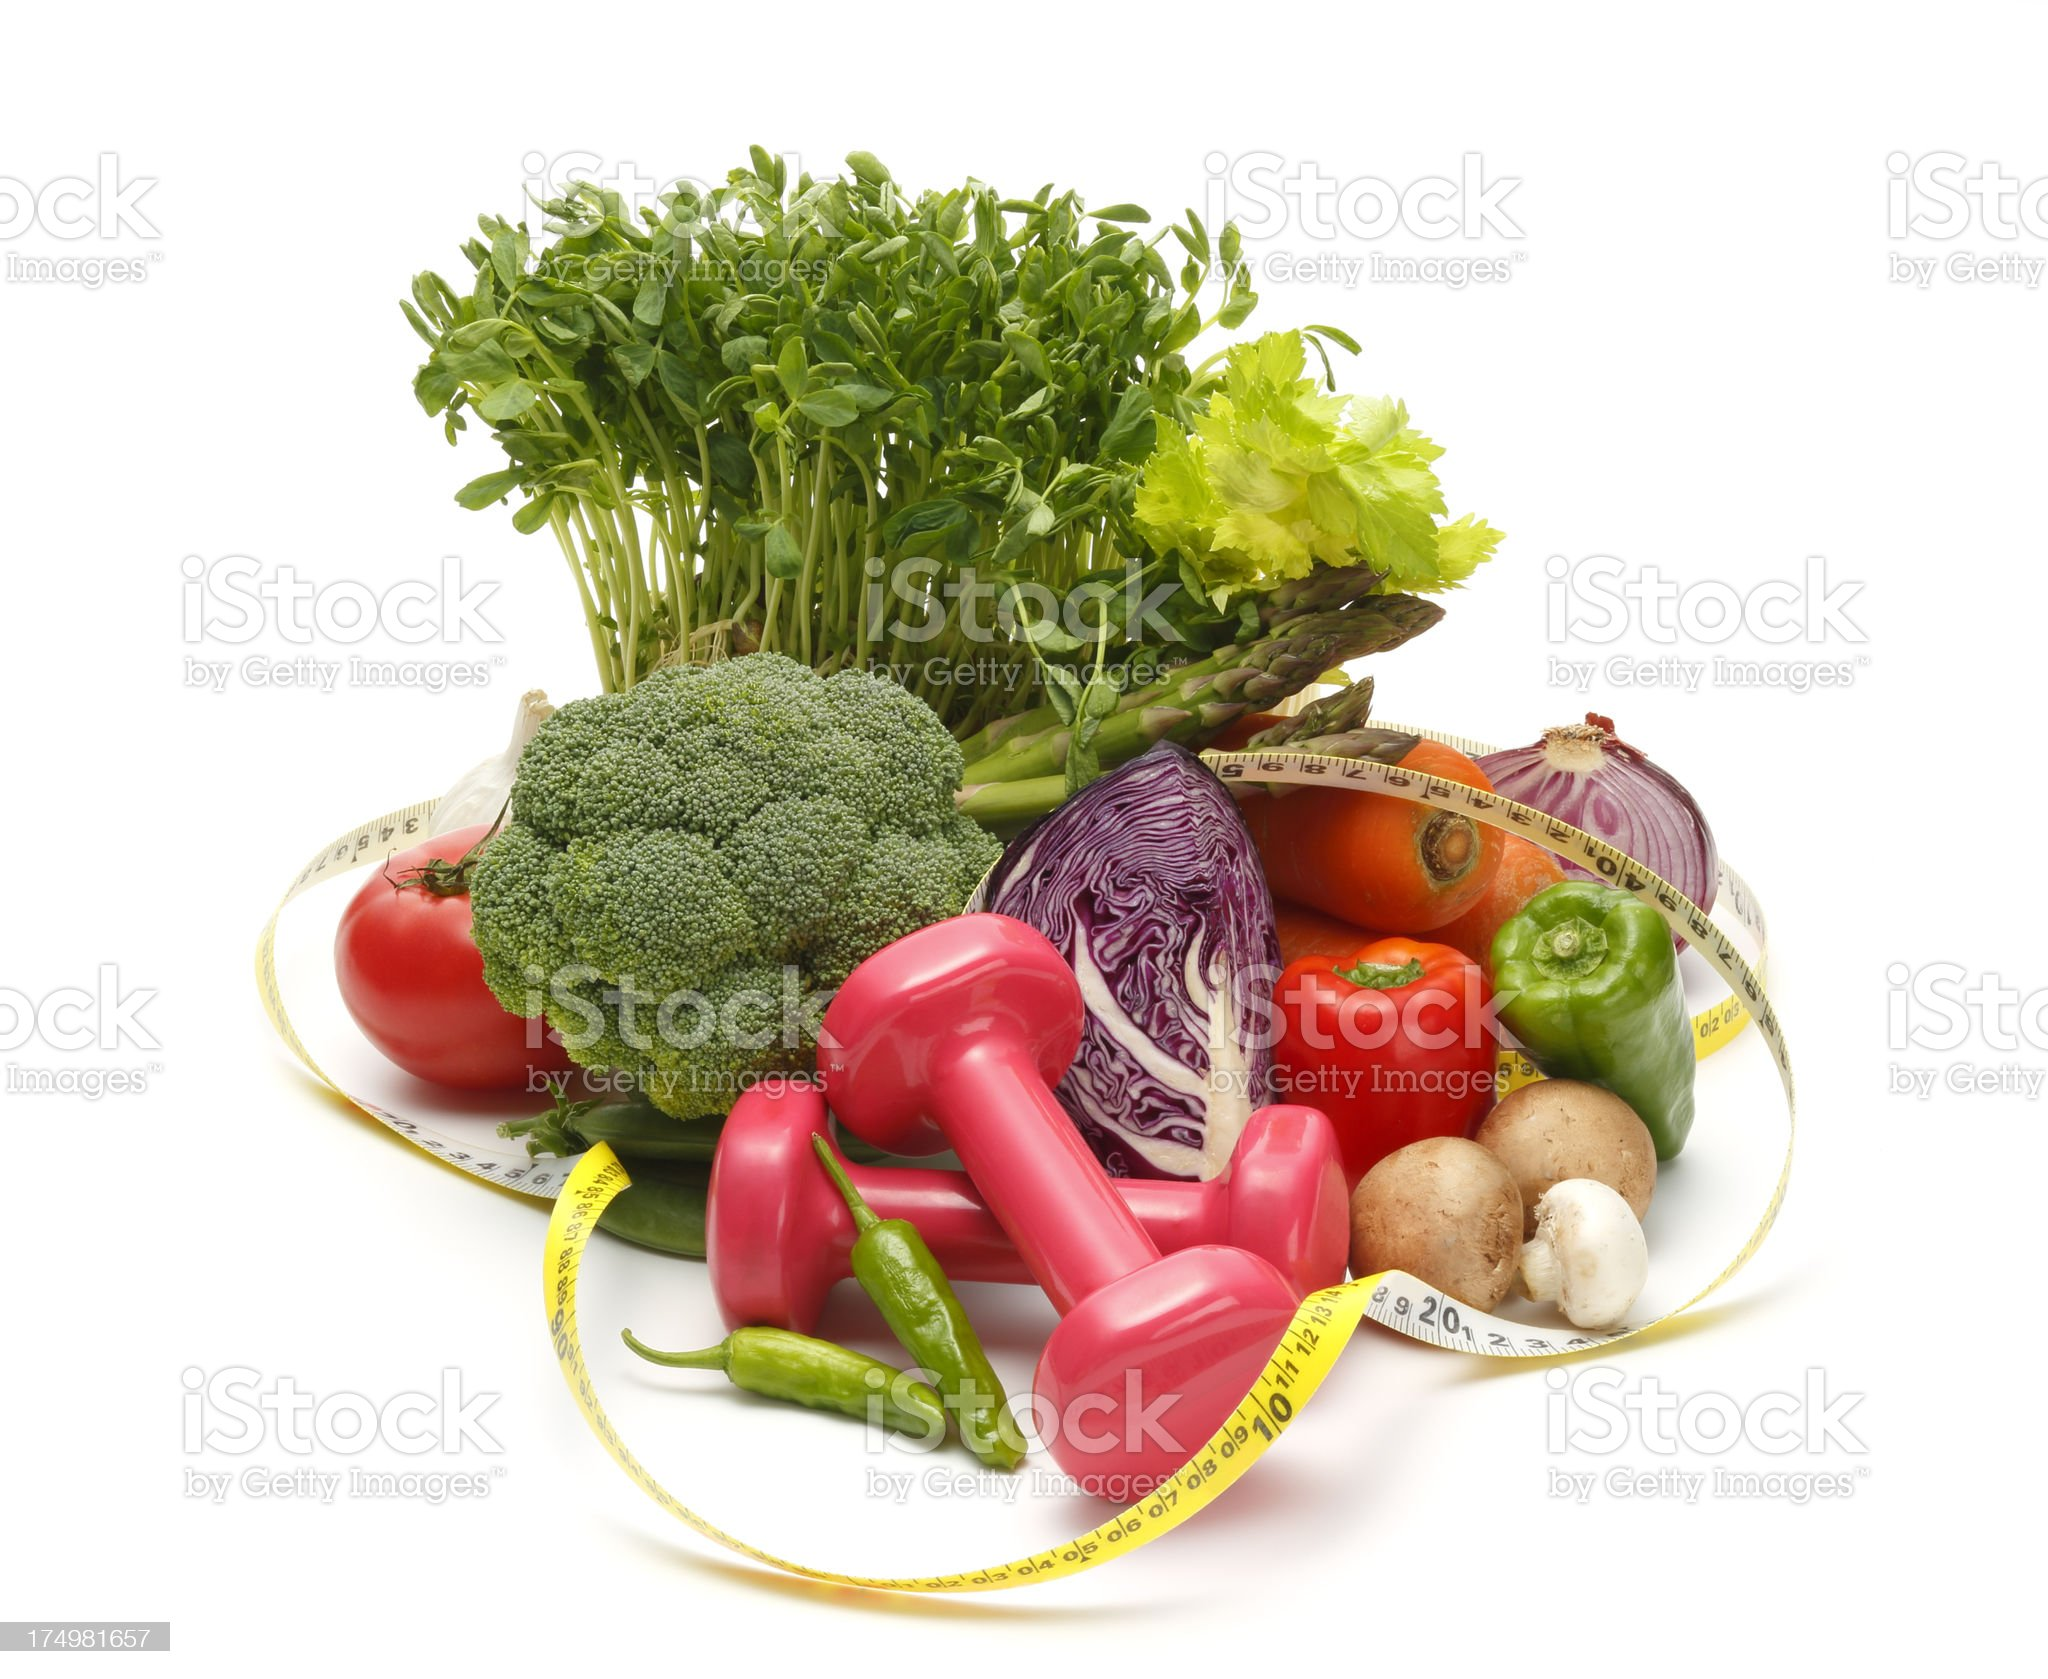 Healthy Vegetables(Dieting Concept) royalty-free stock photo